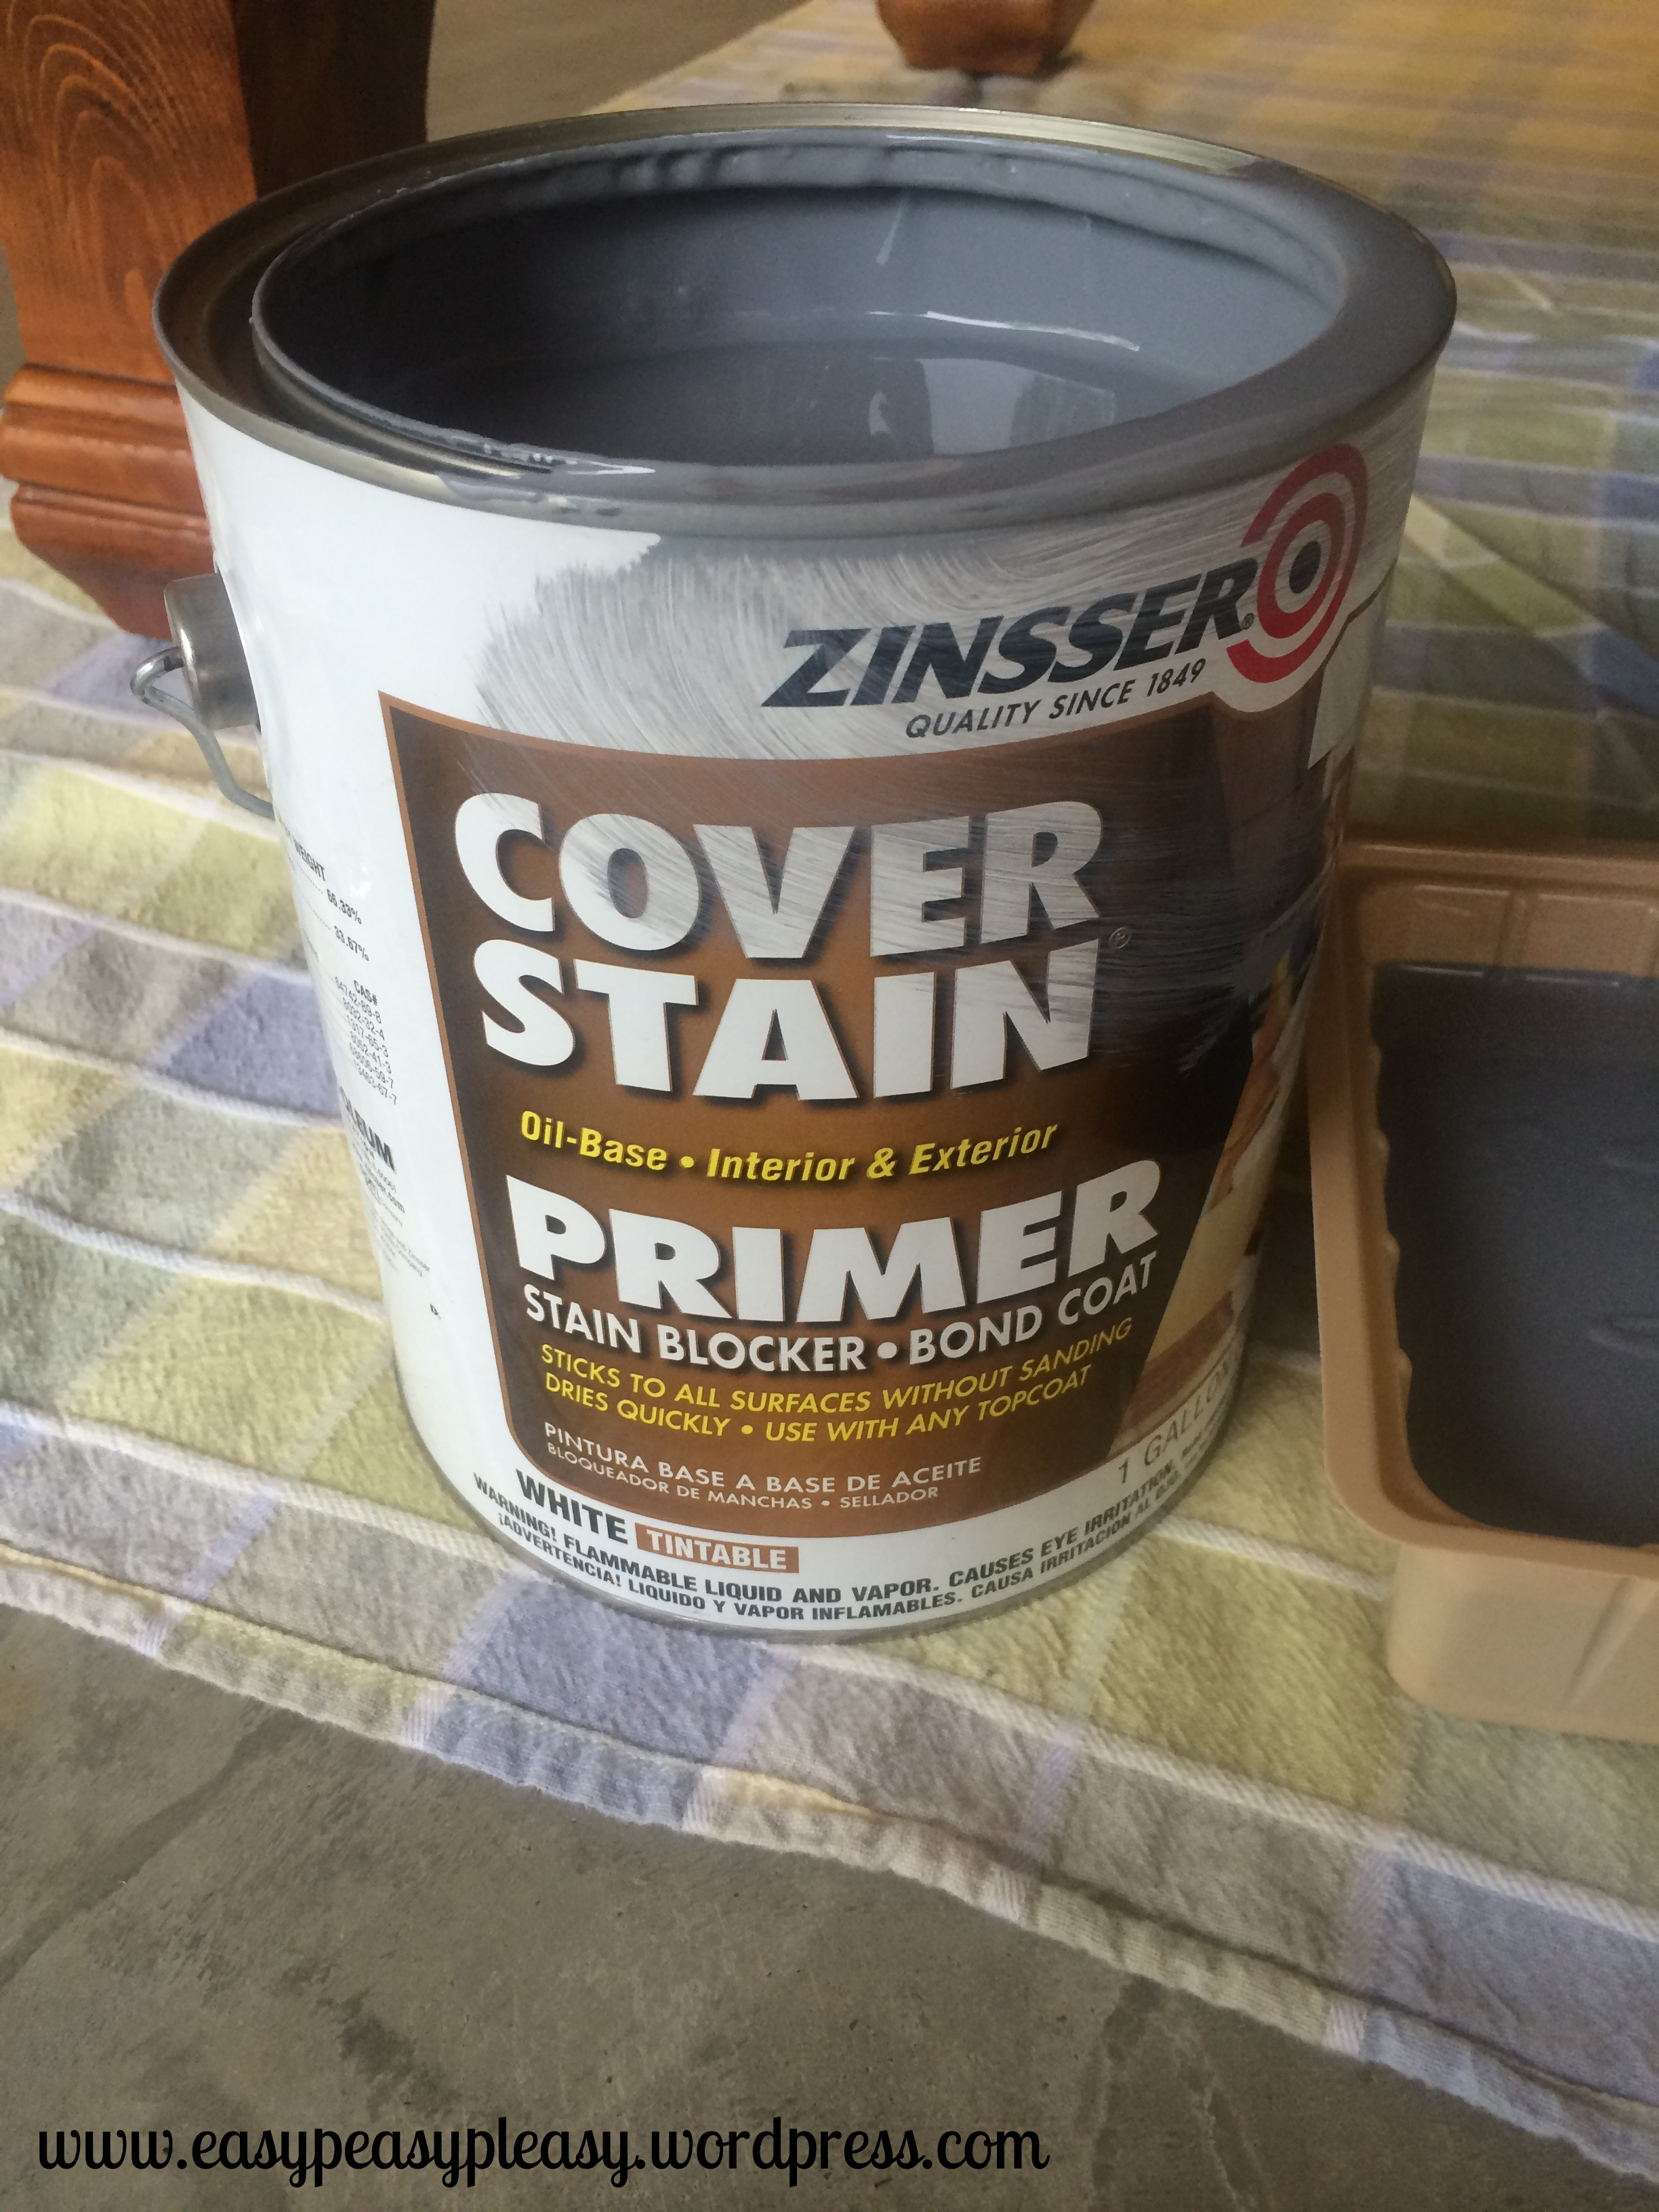 No need to sand wood before painting, just use a coat of Cover Stain Primer